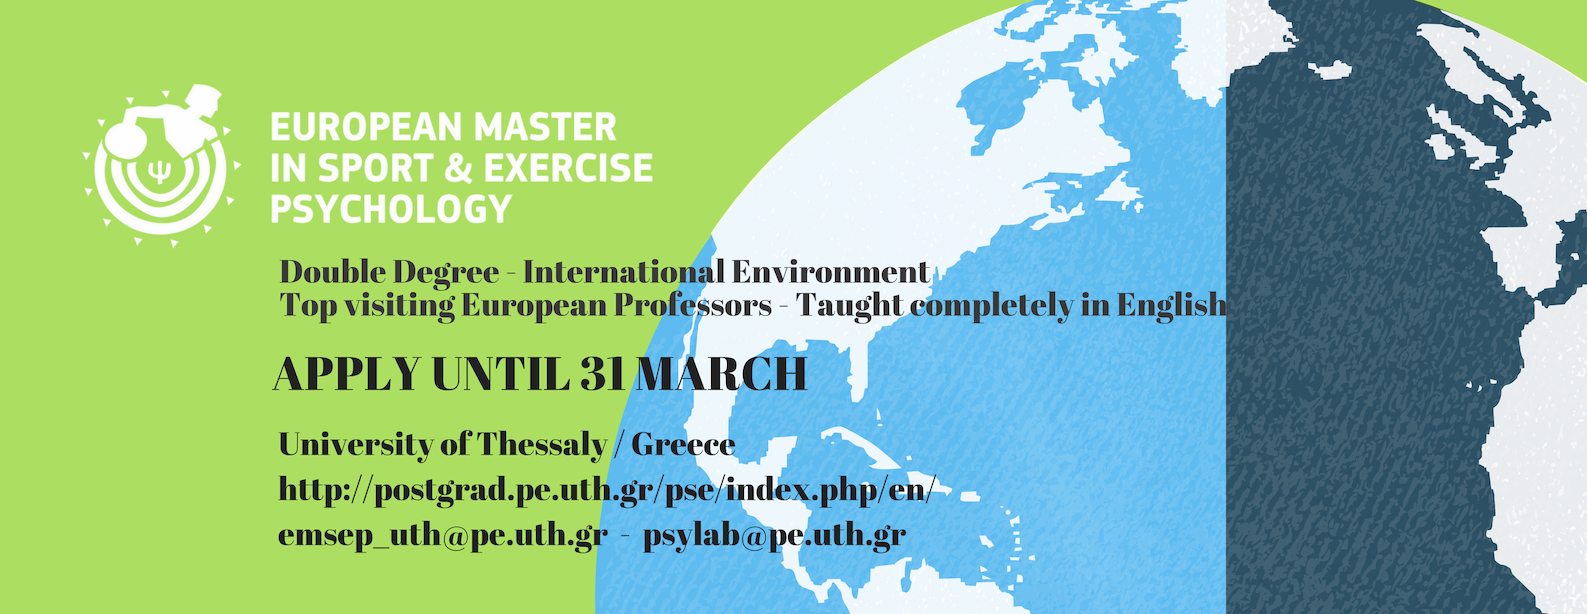 European Master in Sport & Exercise Psychology: Application period is now open!